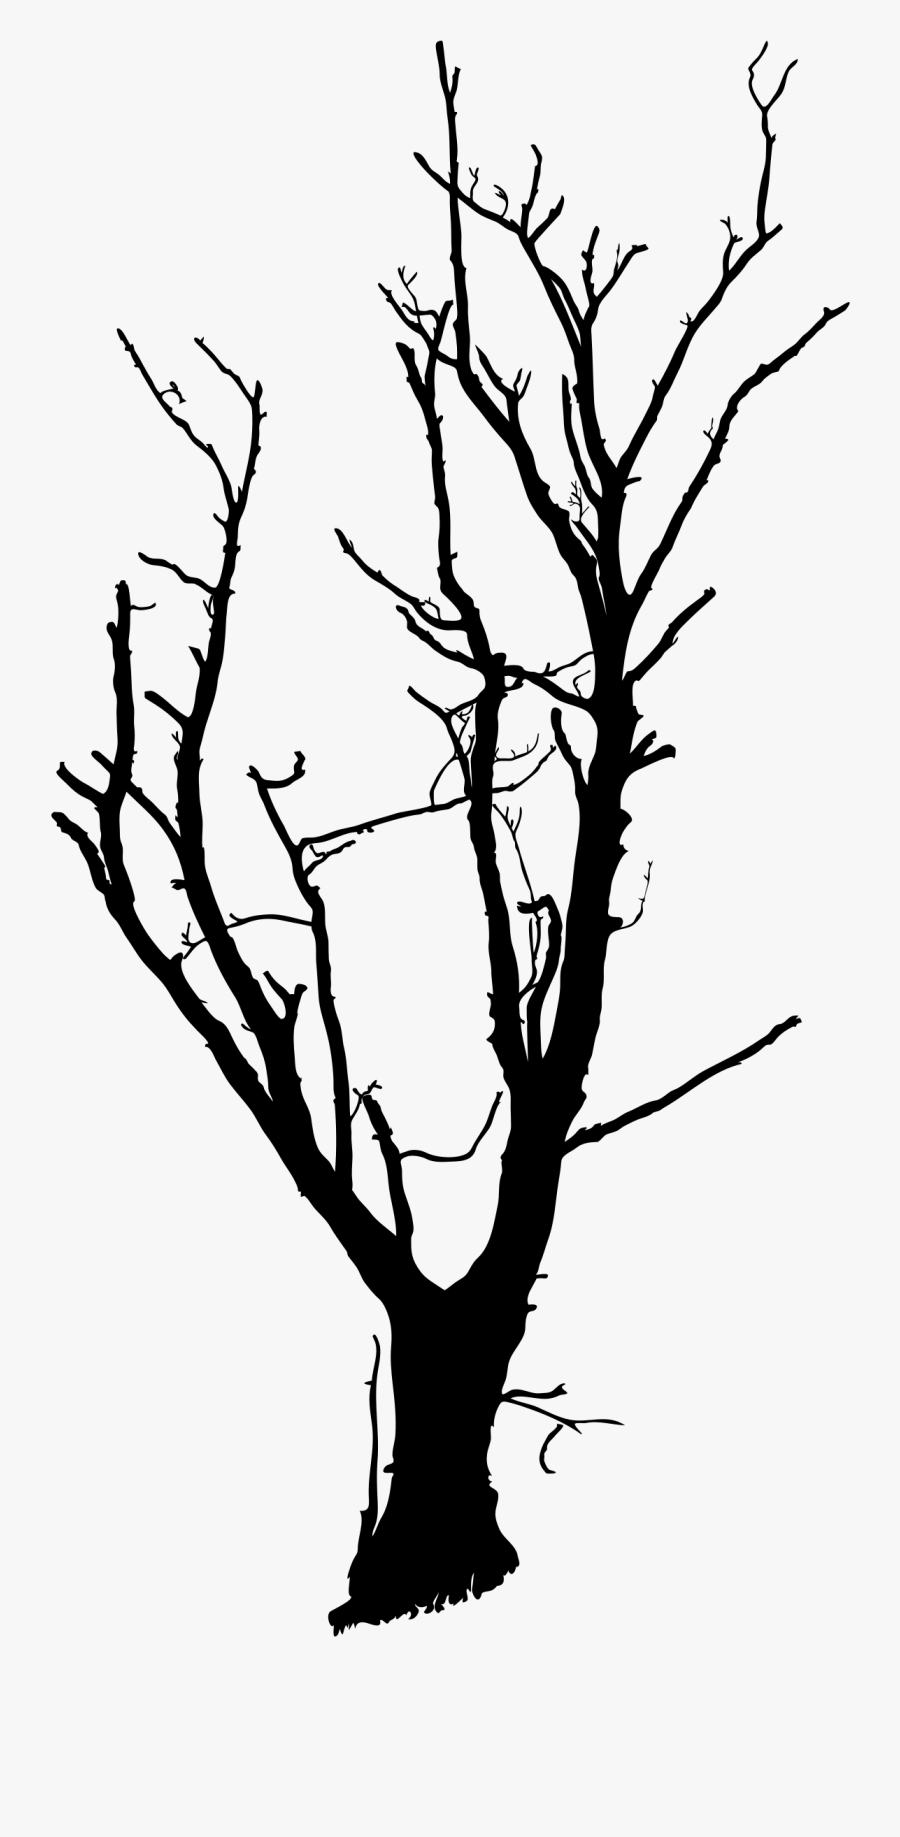 Google Image Result For Https Www Clipartkey Com Mpngs M 24 245824 Transparent Treeline Silhouette Png Dead Tree Silhouette Pn Tree Silhouette Art Silhouette